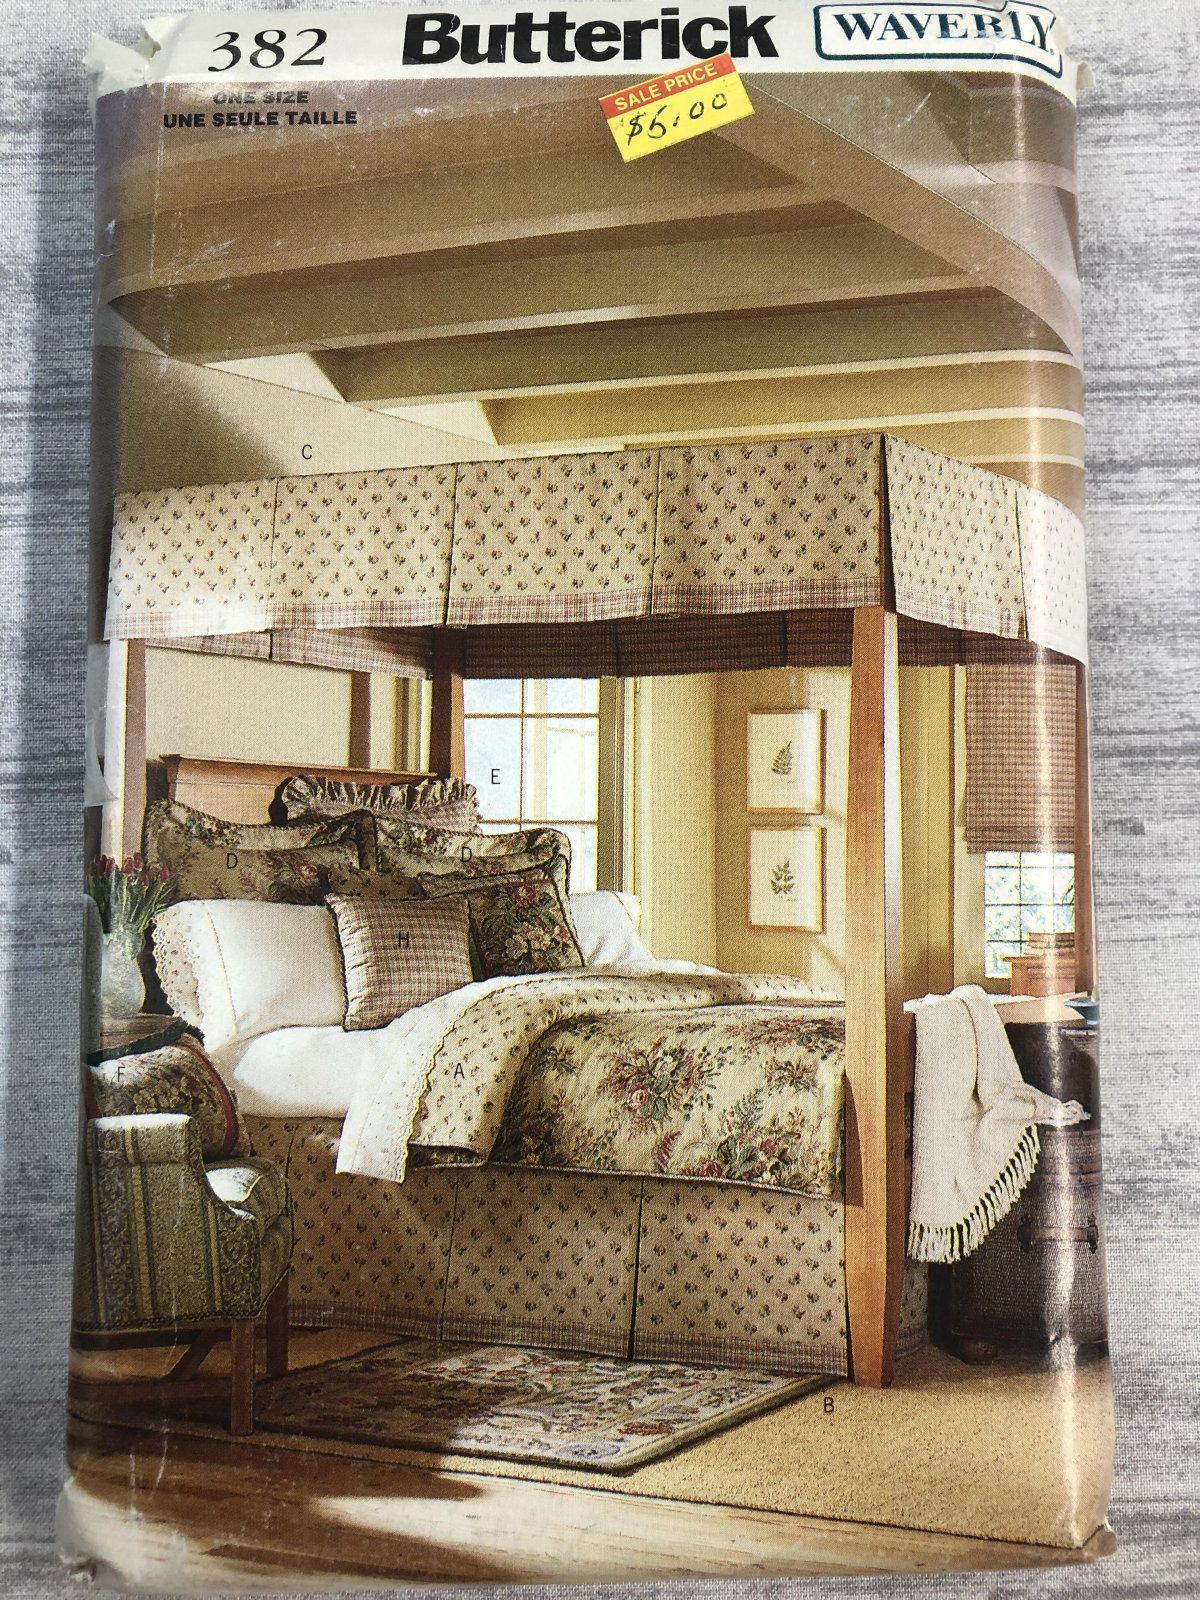 Butterick Waverly Canopy Bedroom 0382